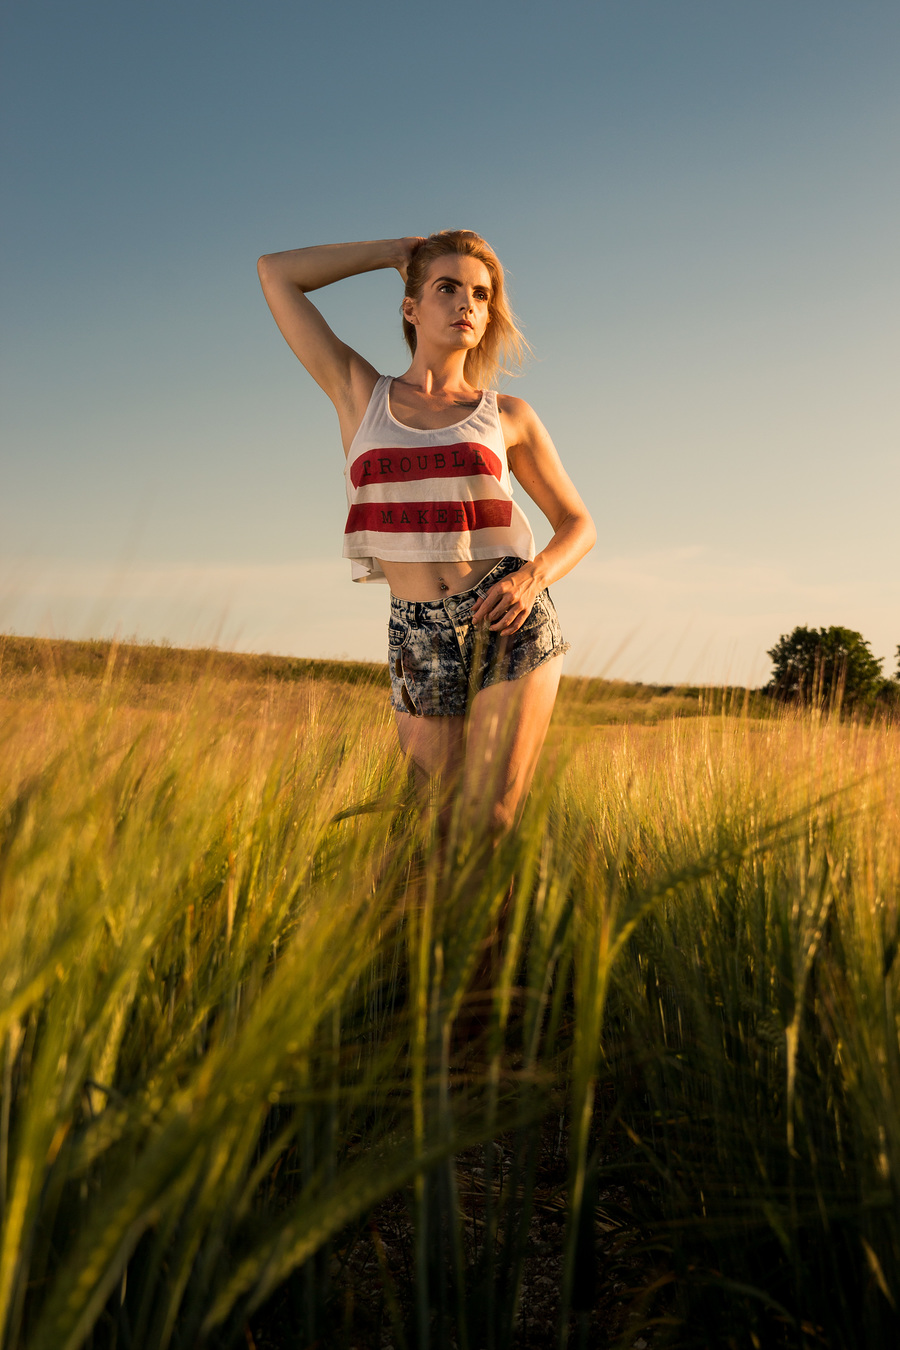 Just standing in a barley field watching the world go by! / Photography by N Newby Photographic, Model LeahMeraki / Uploaded 4th July 2020 @ 10:12 PM